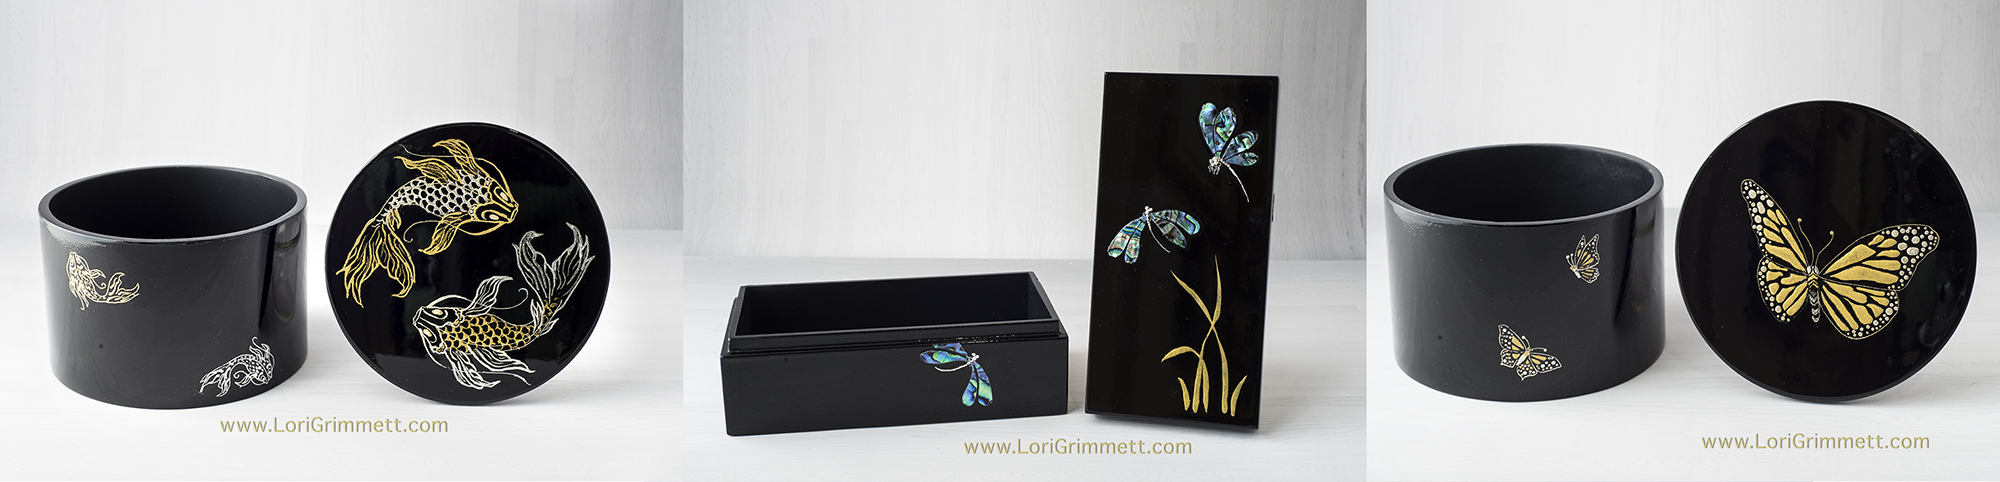 Maki-e box with dragonfly design